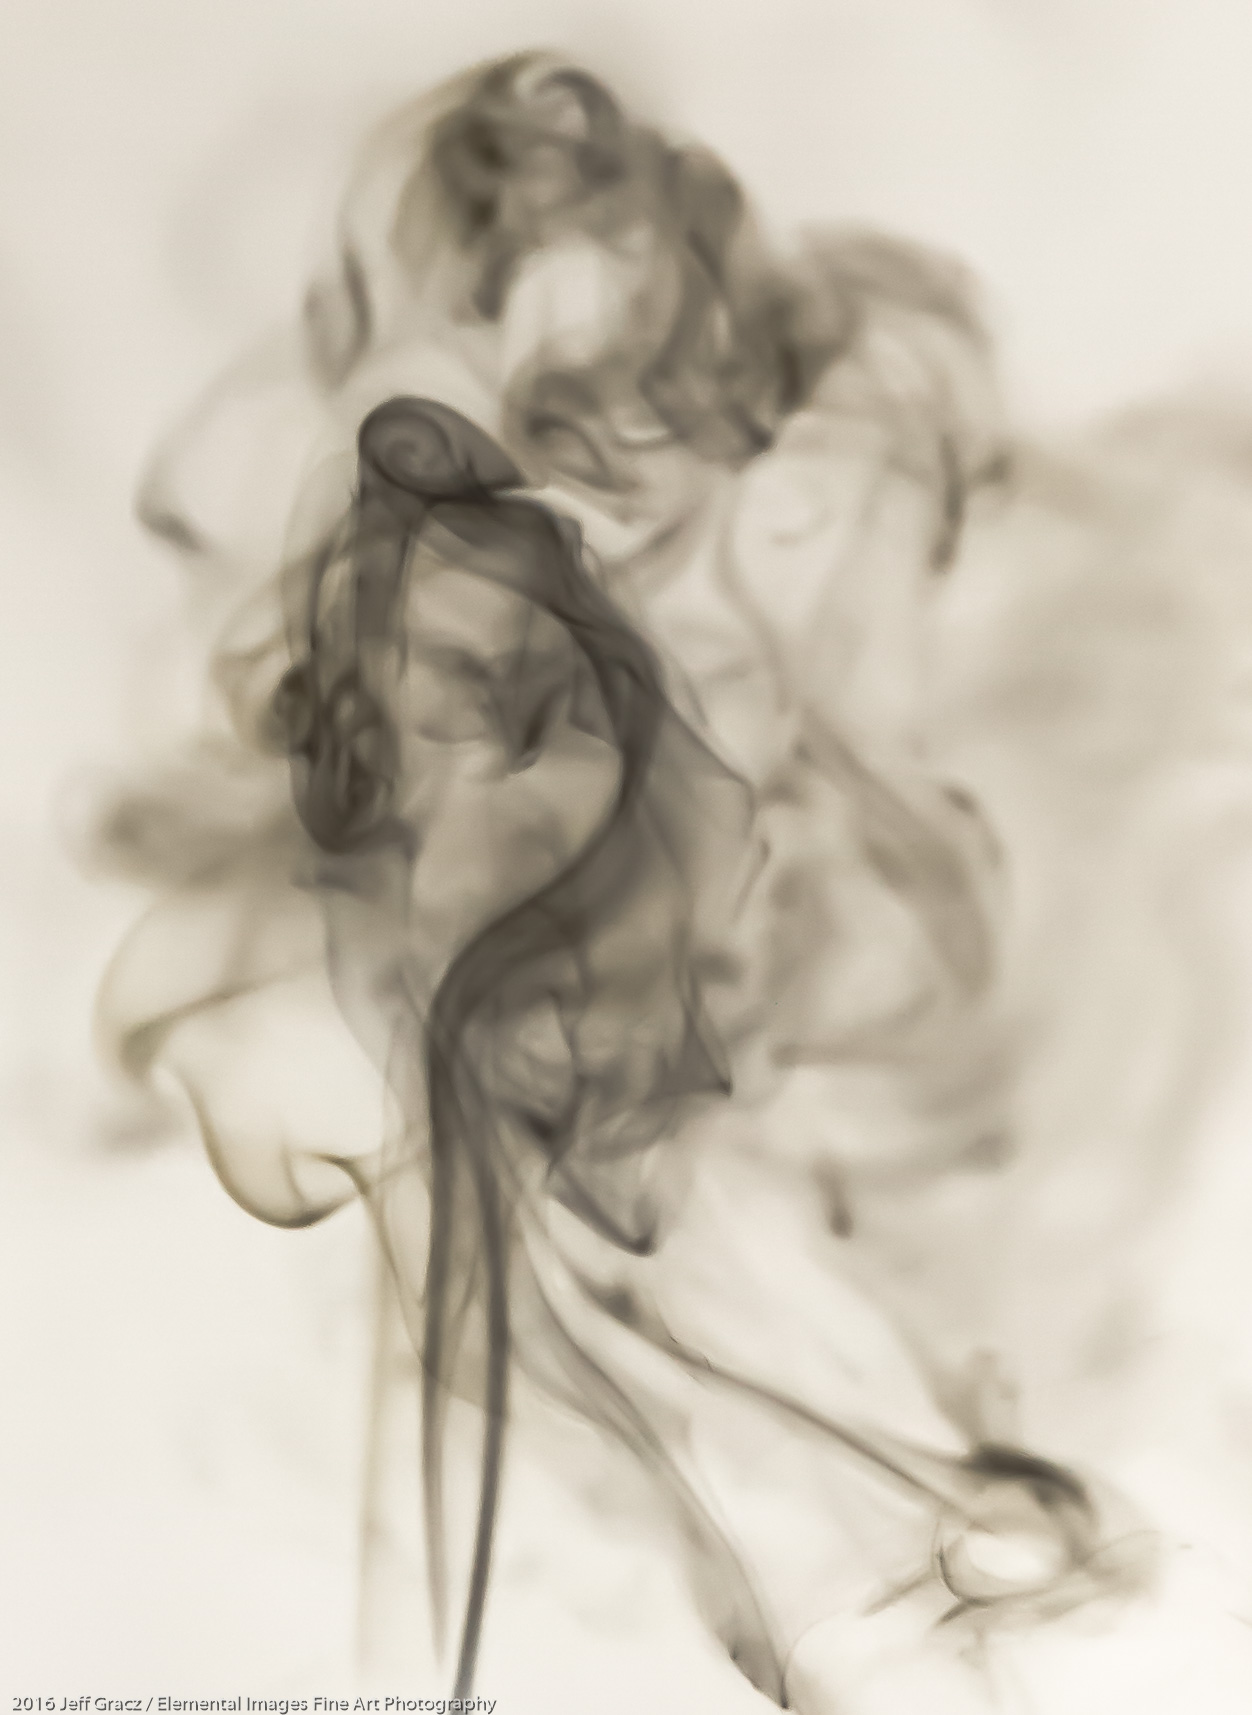 Smoke 28 | Vancouver | WA | USA - © 2016 Jeff Gracz / Elemental Images Fine Art Photography - All Rights Reserved Worldwide